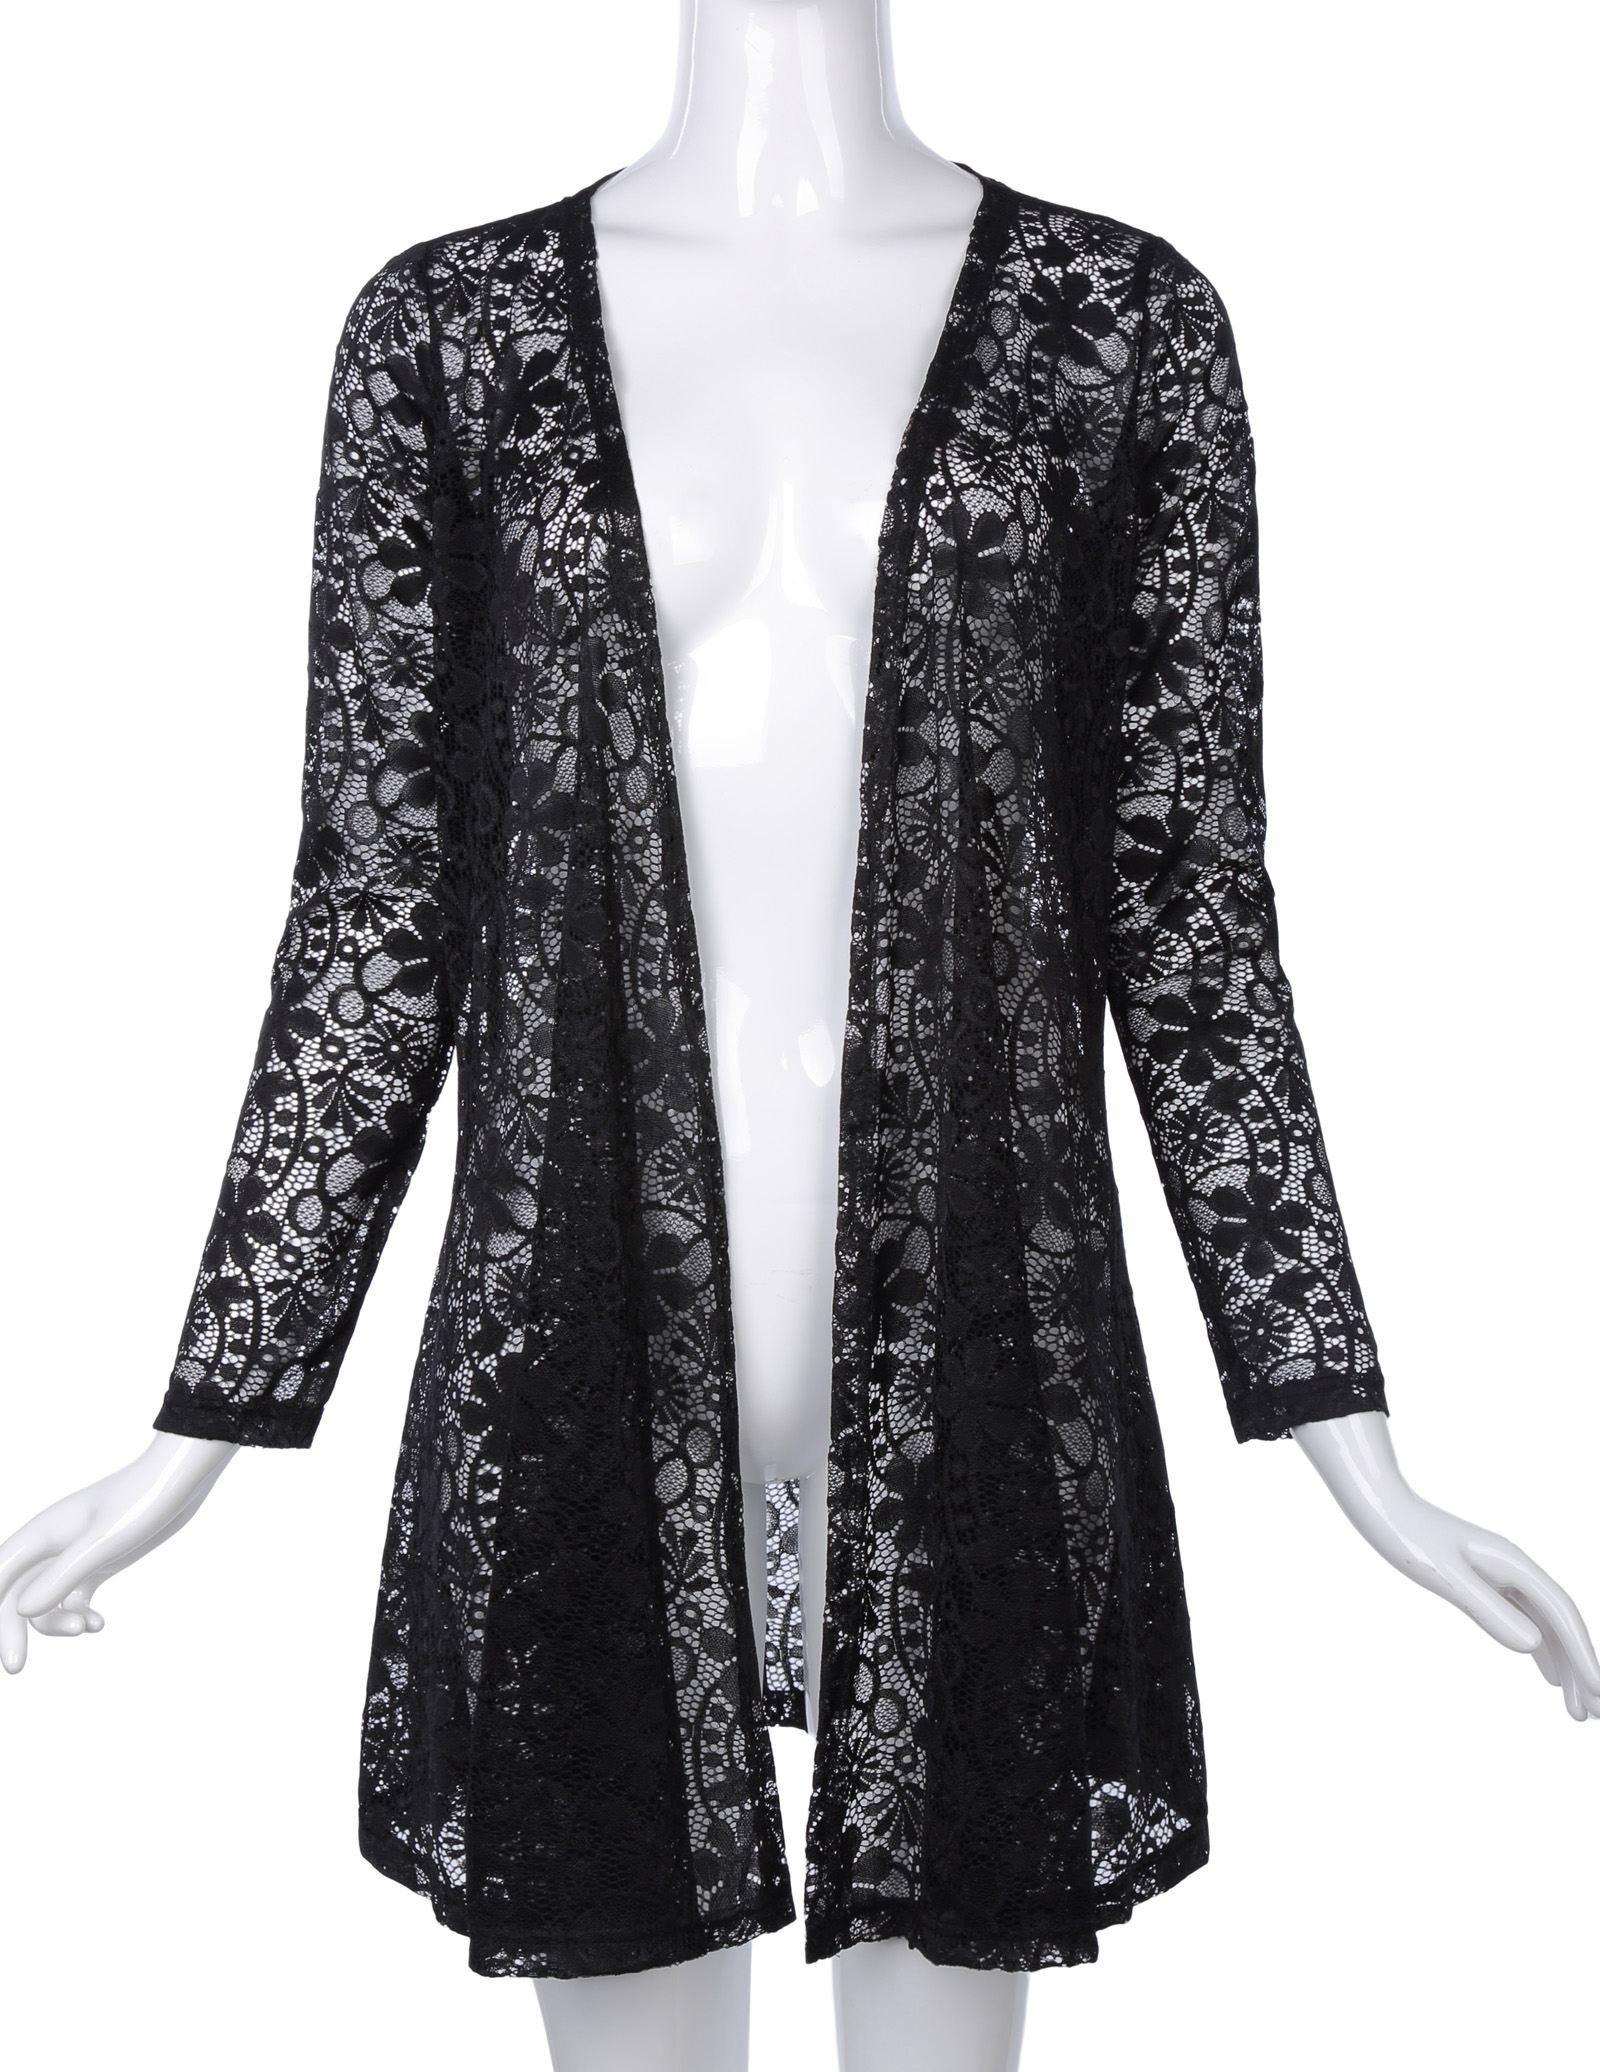 Sexy lace coat Women clothing Long Sleeve Open Front See Through Lace queen mother elegant Coat office work Tops casaca mujer